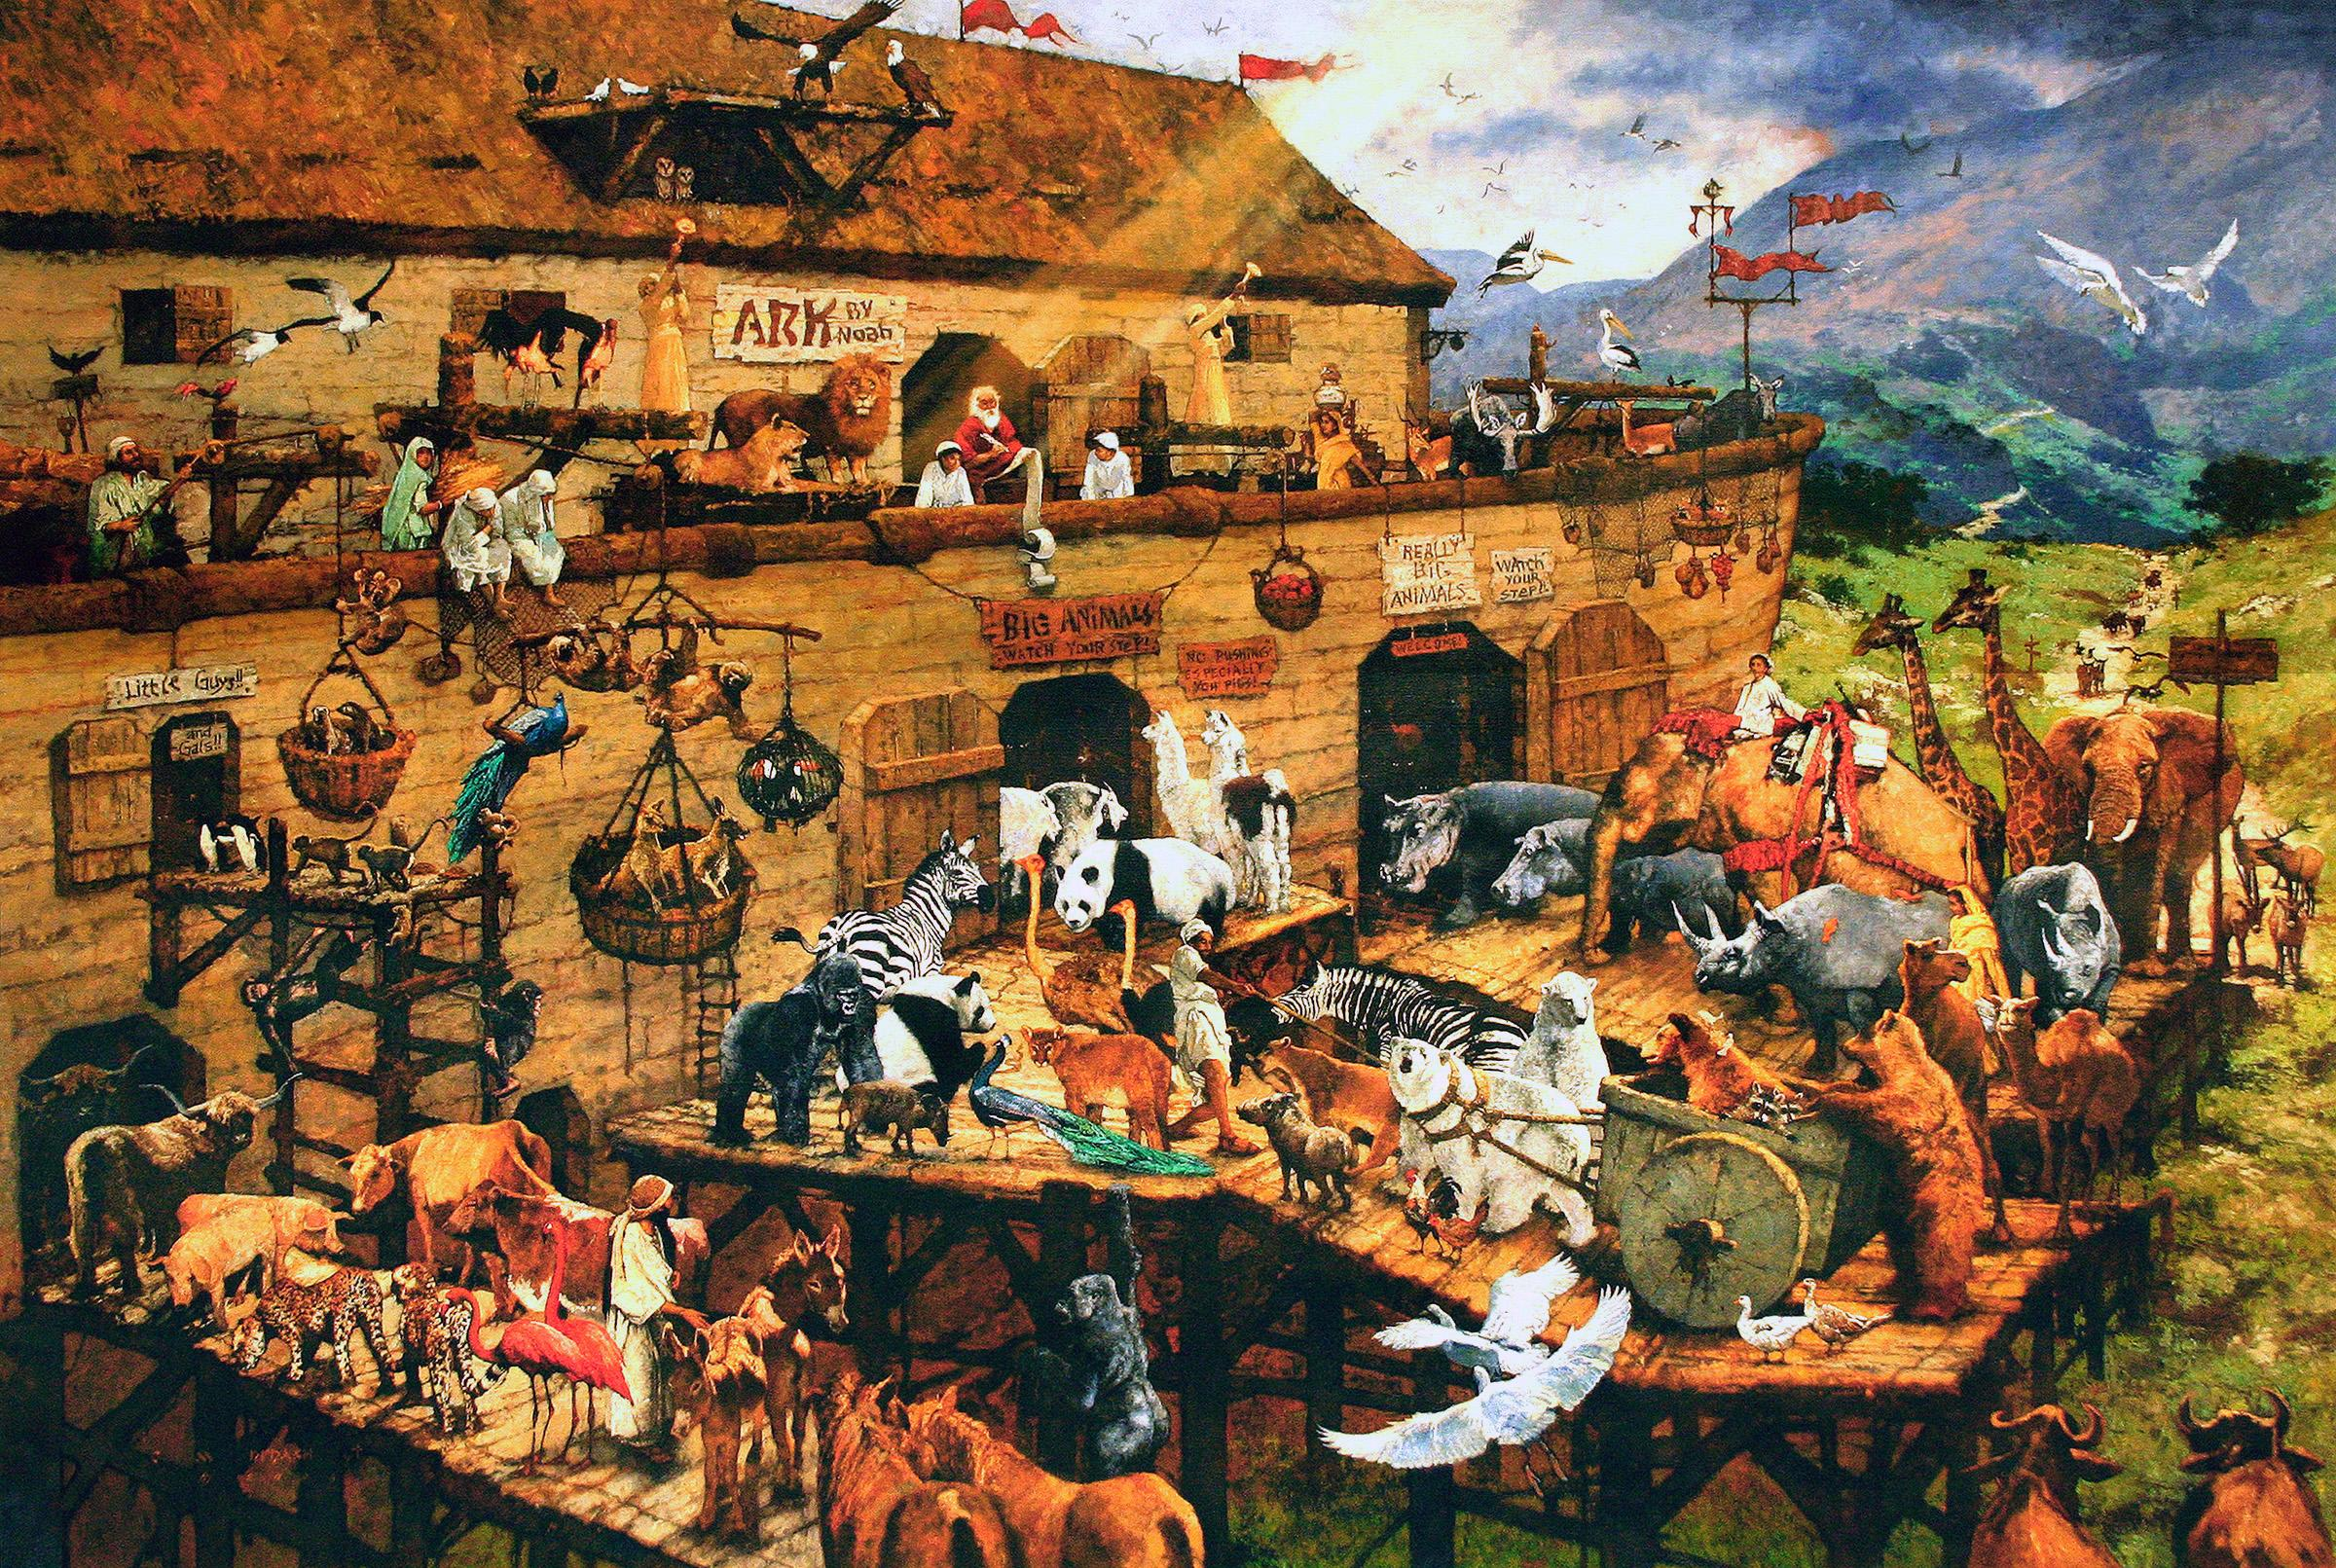 """It's a Zoo in There"", C. Michael Dudash, Original Oil on Canvas of Noah's Ark"